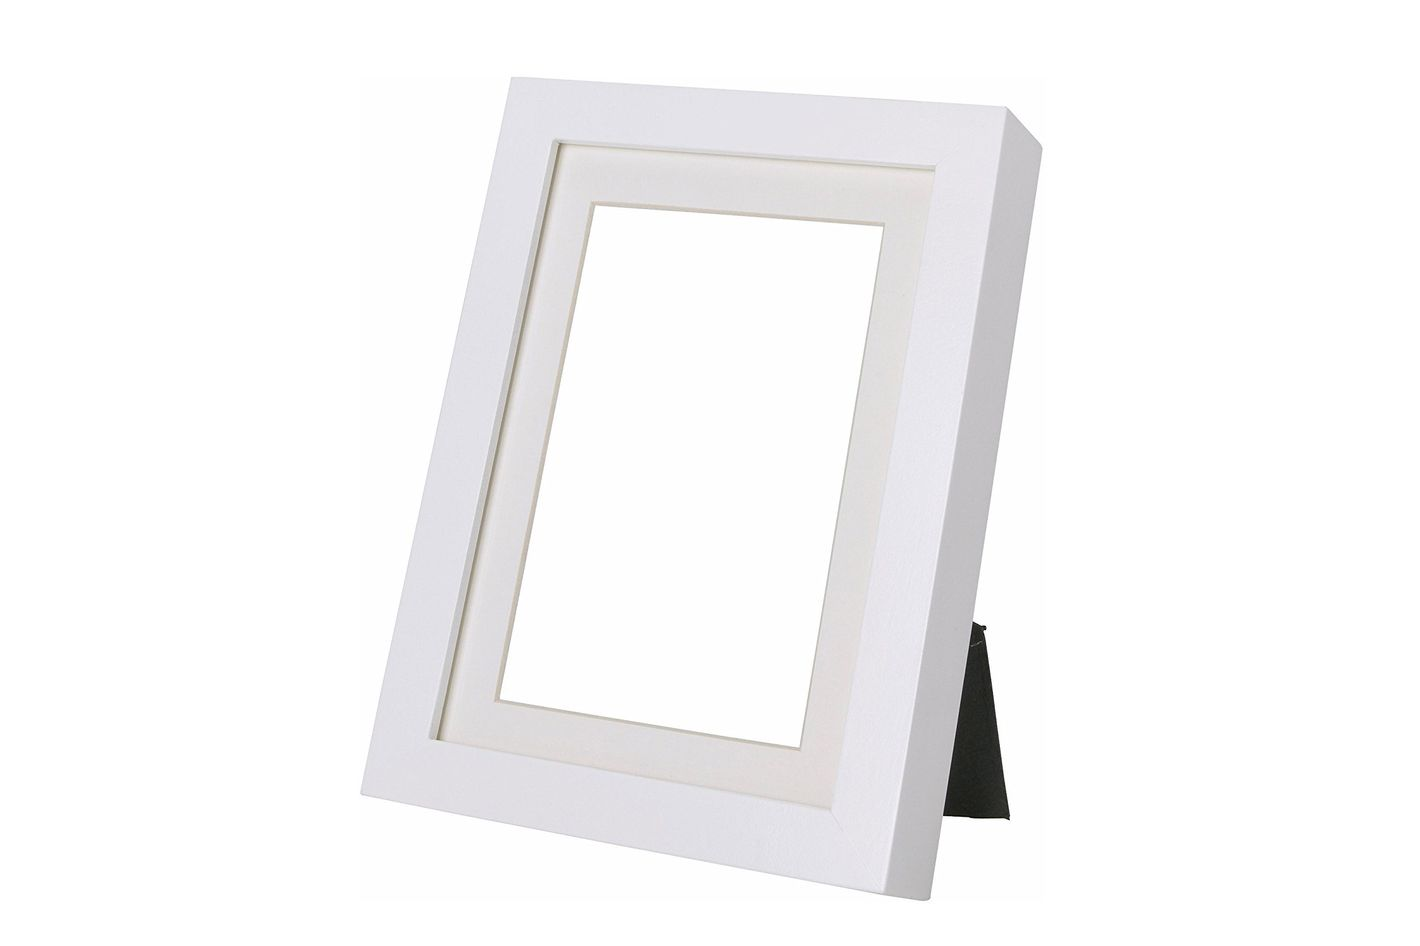 Best affordable wall art frames ikea ribba white 8 x 10 picture frame at amazon gumiabroncs Choice Image